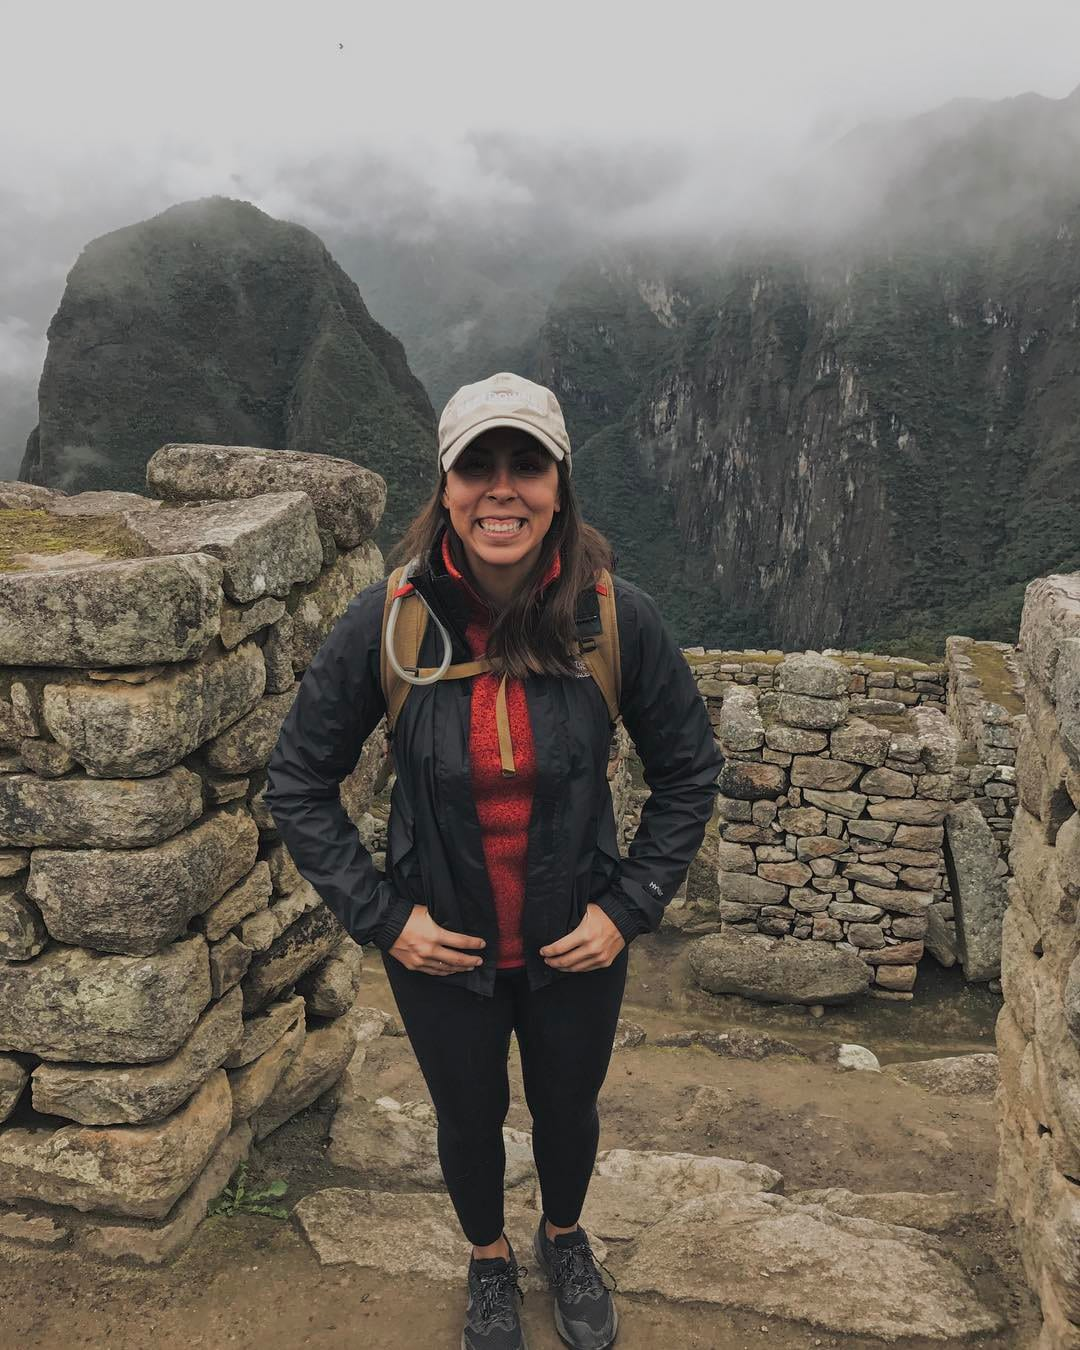 Amy in her hiking gear in Peruvian mountains